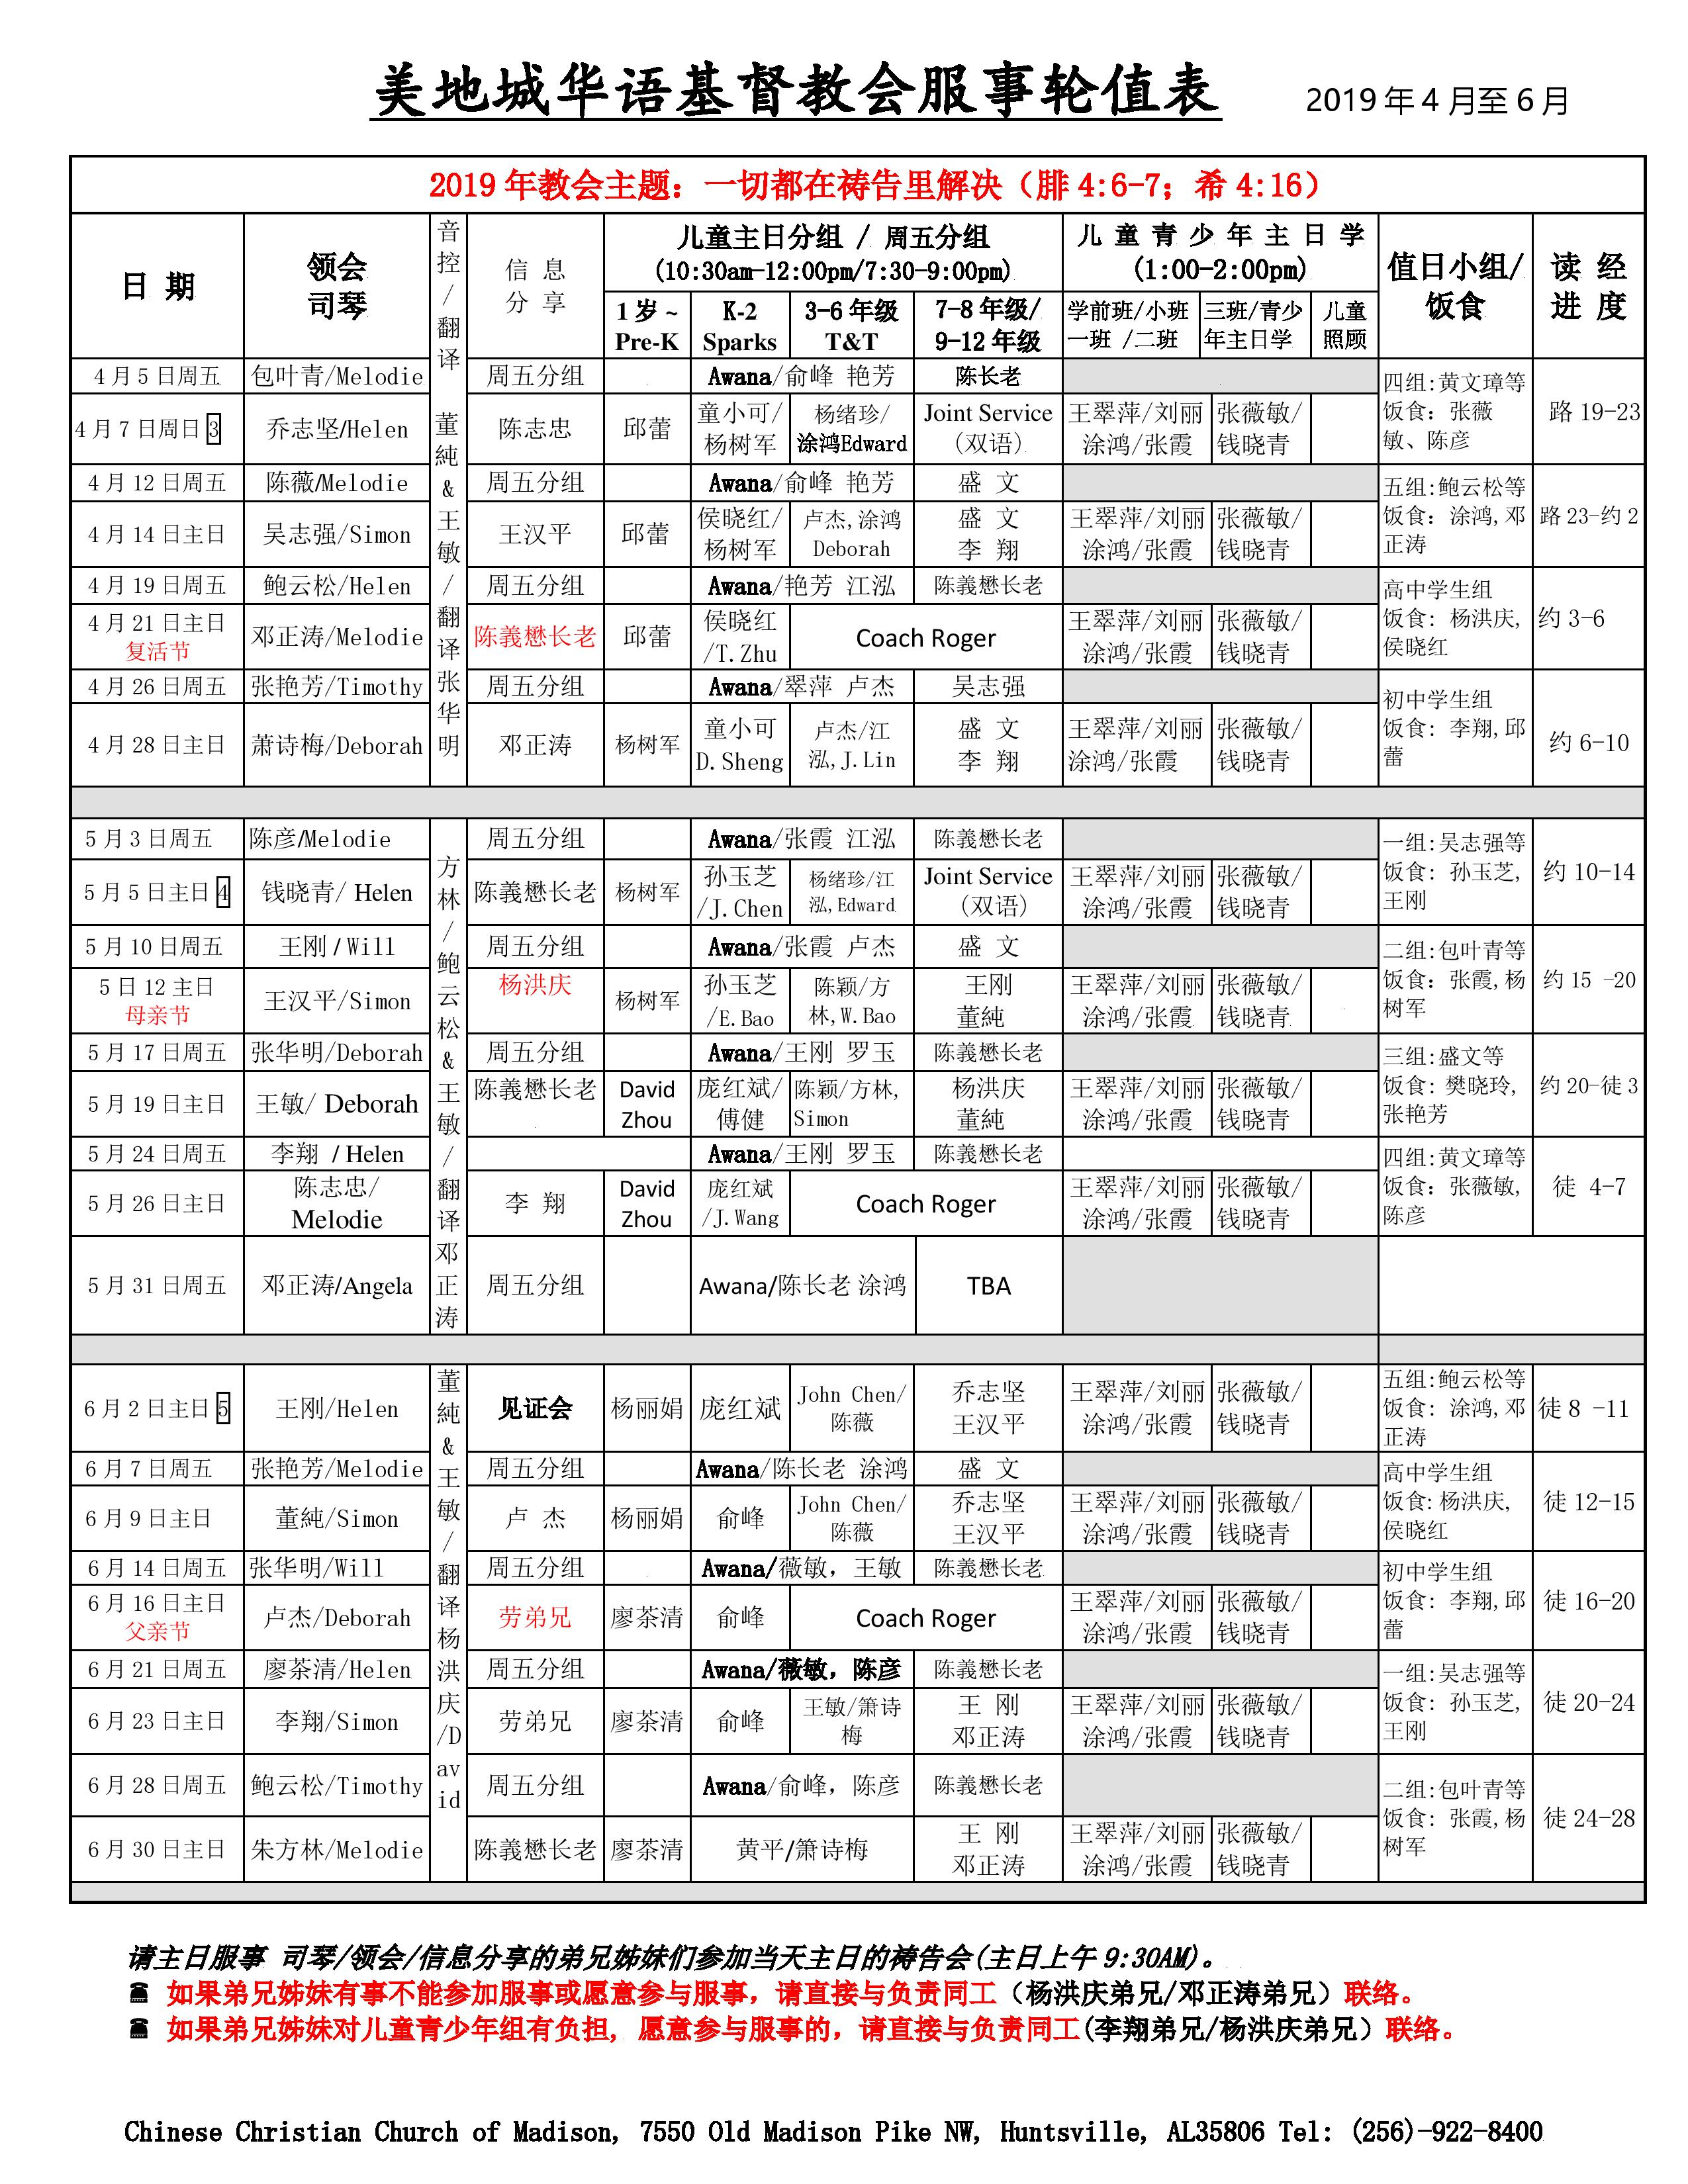 CCCM-Apr-Jun-2019-Schedule